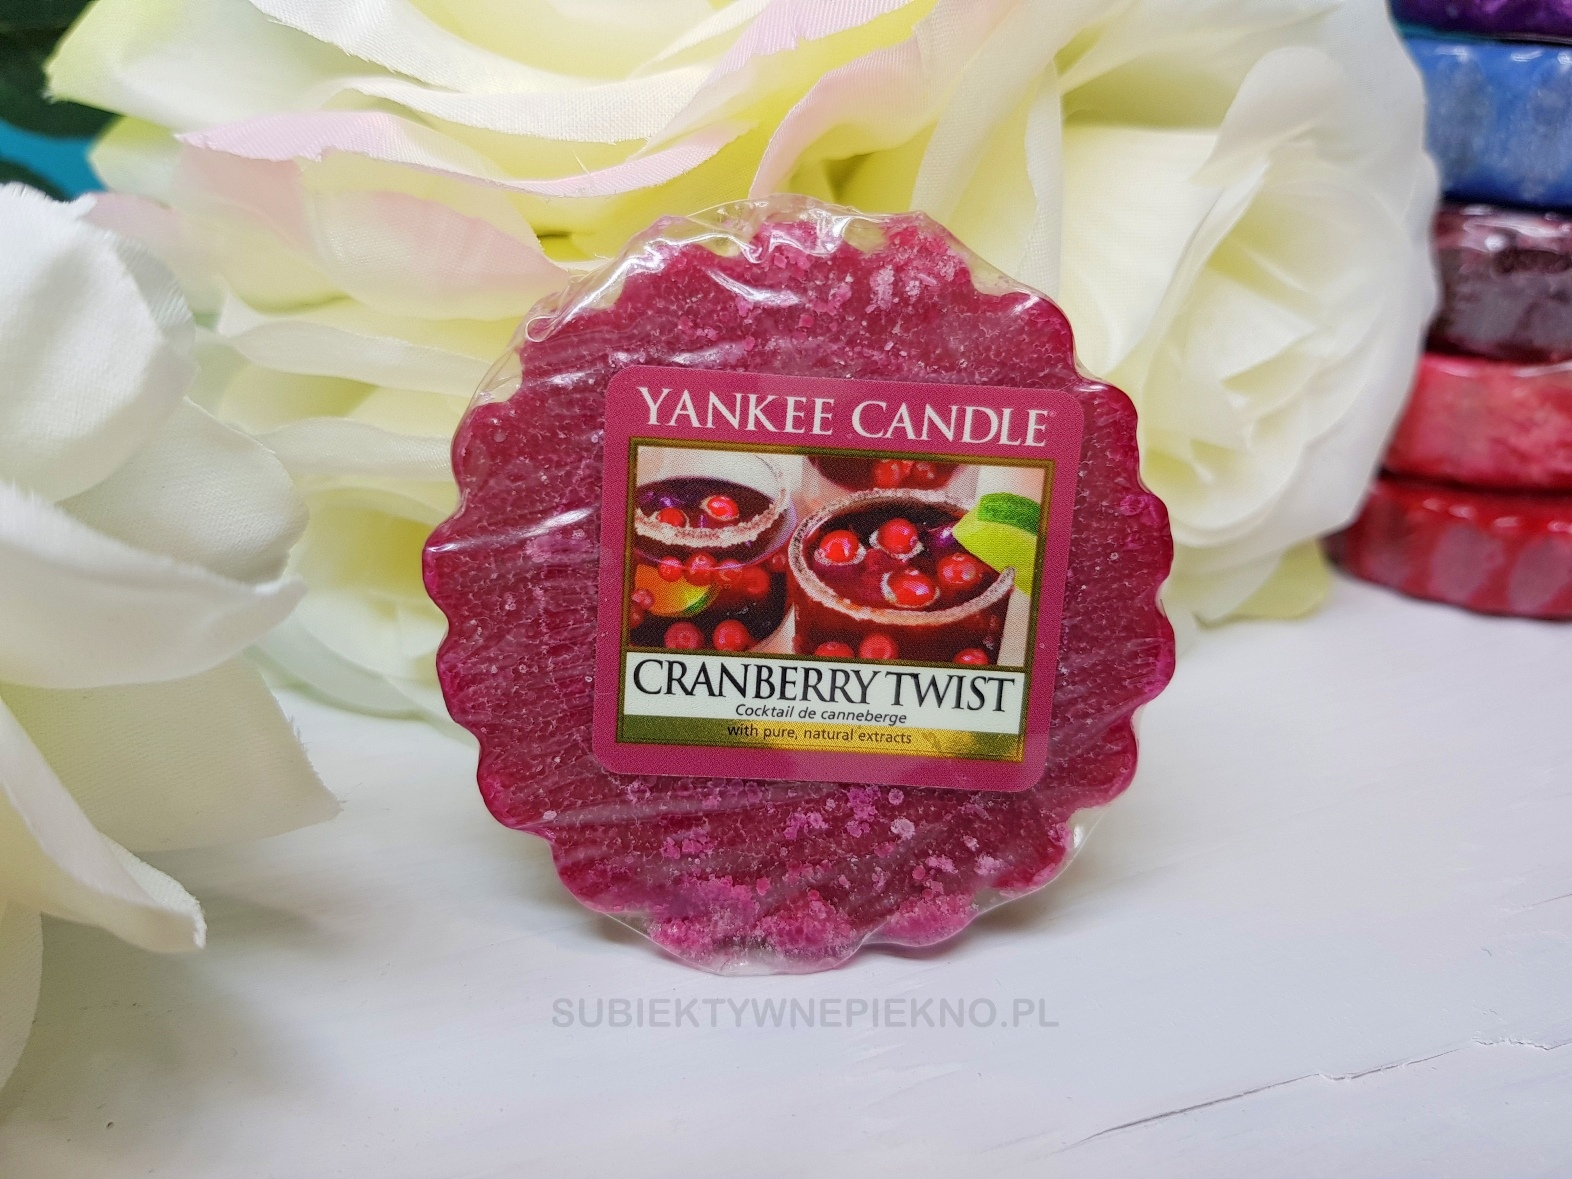 Cranberry Twist Yankee Candle